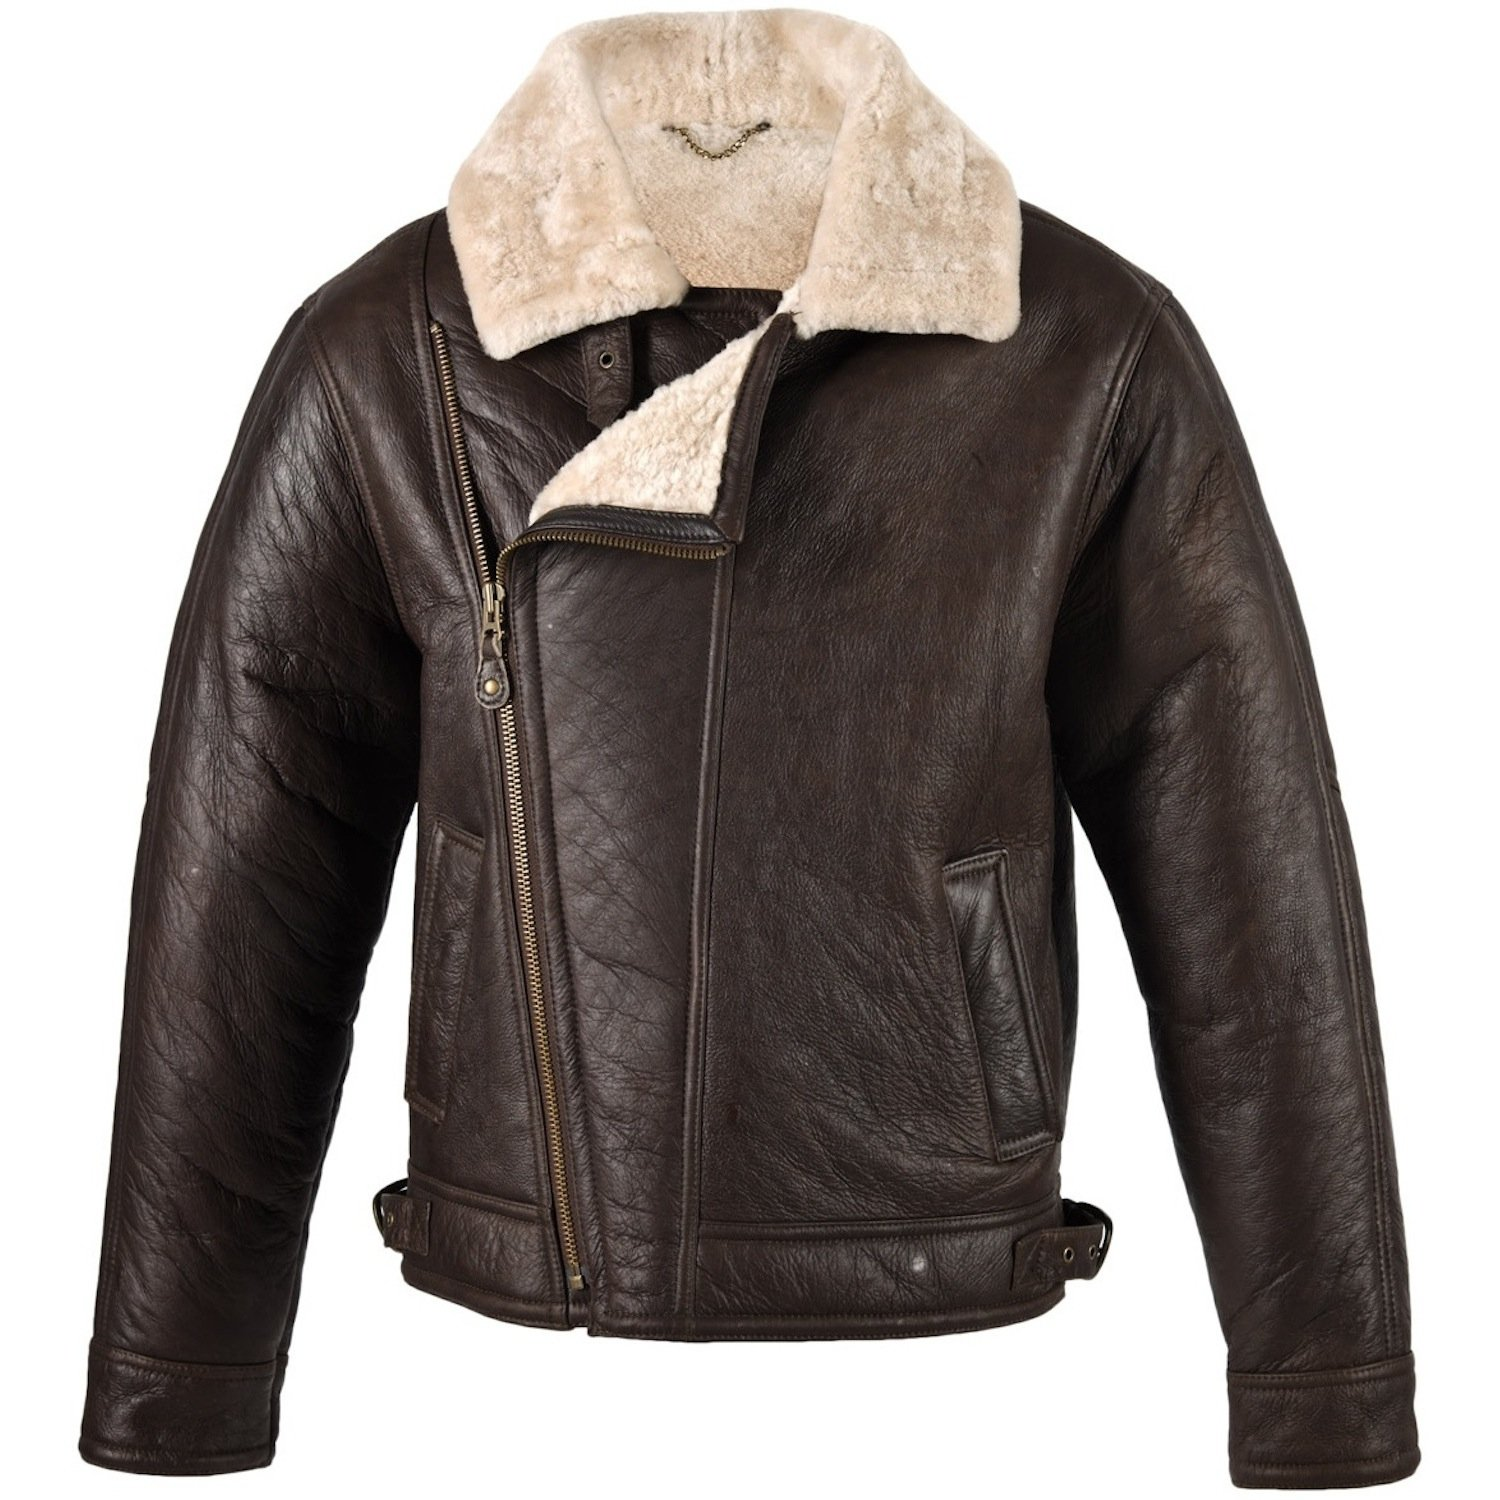 Mens Brown Leather Aviator Flying / Bomber Jacket with Sheepskin lining